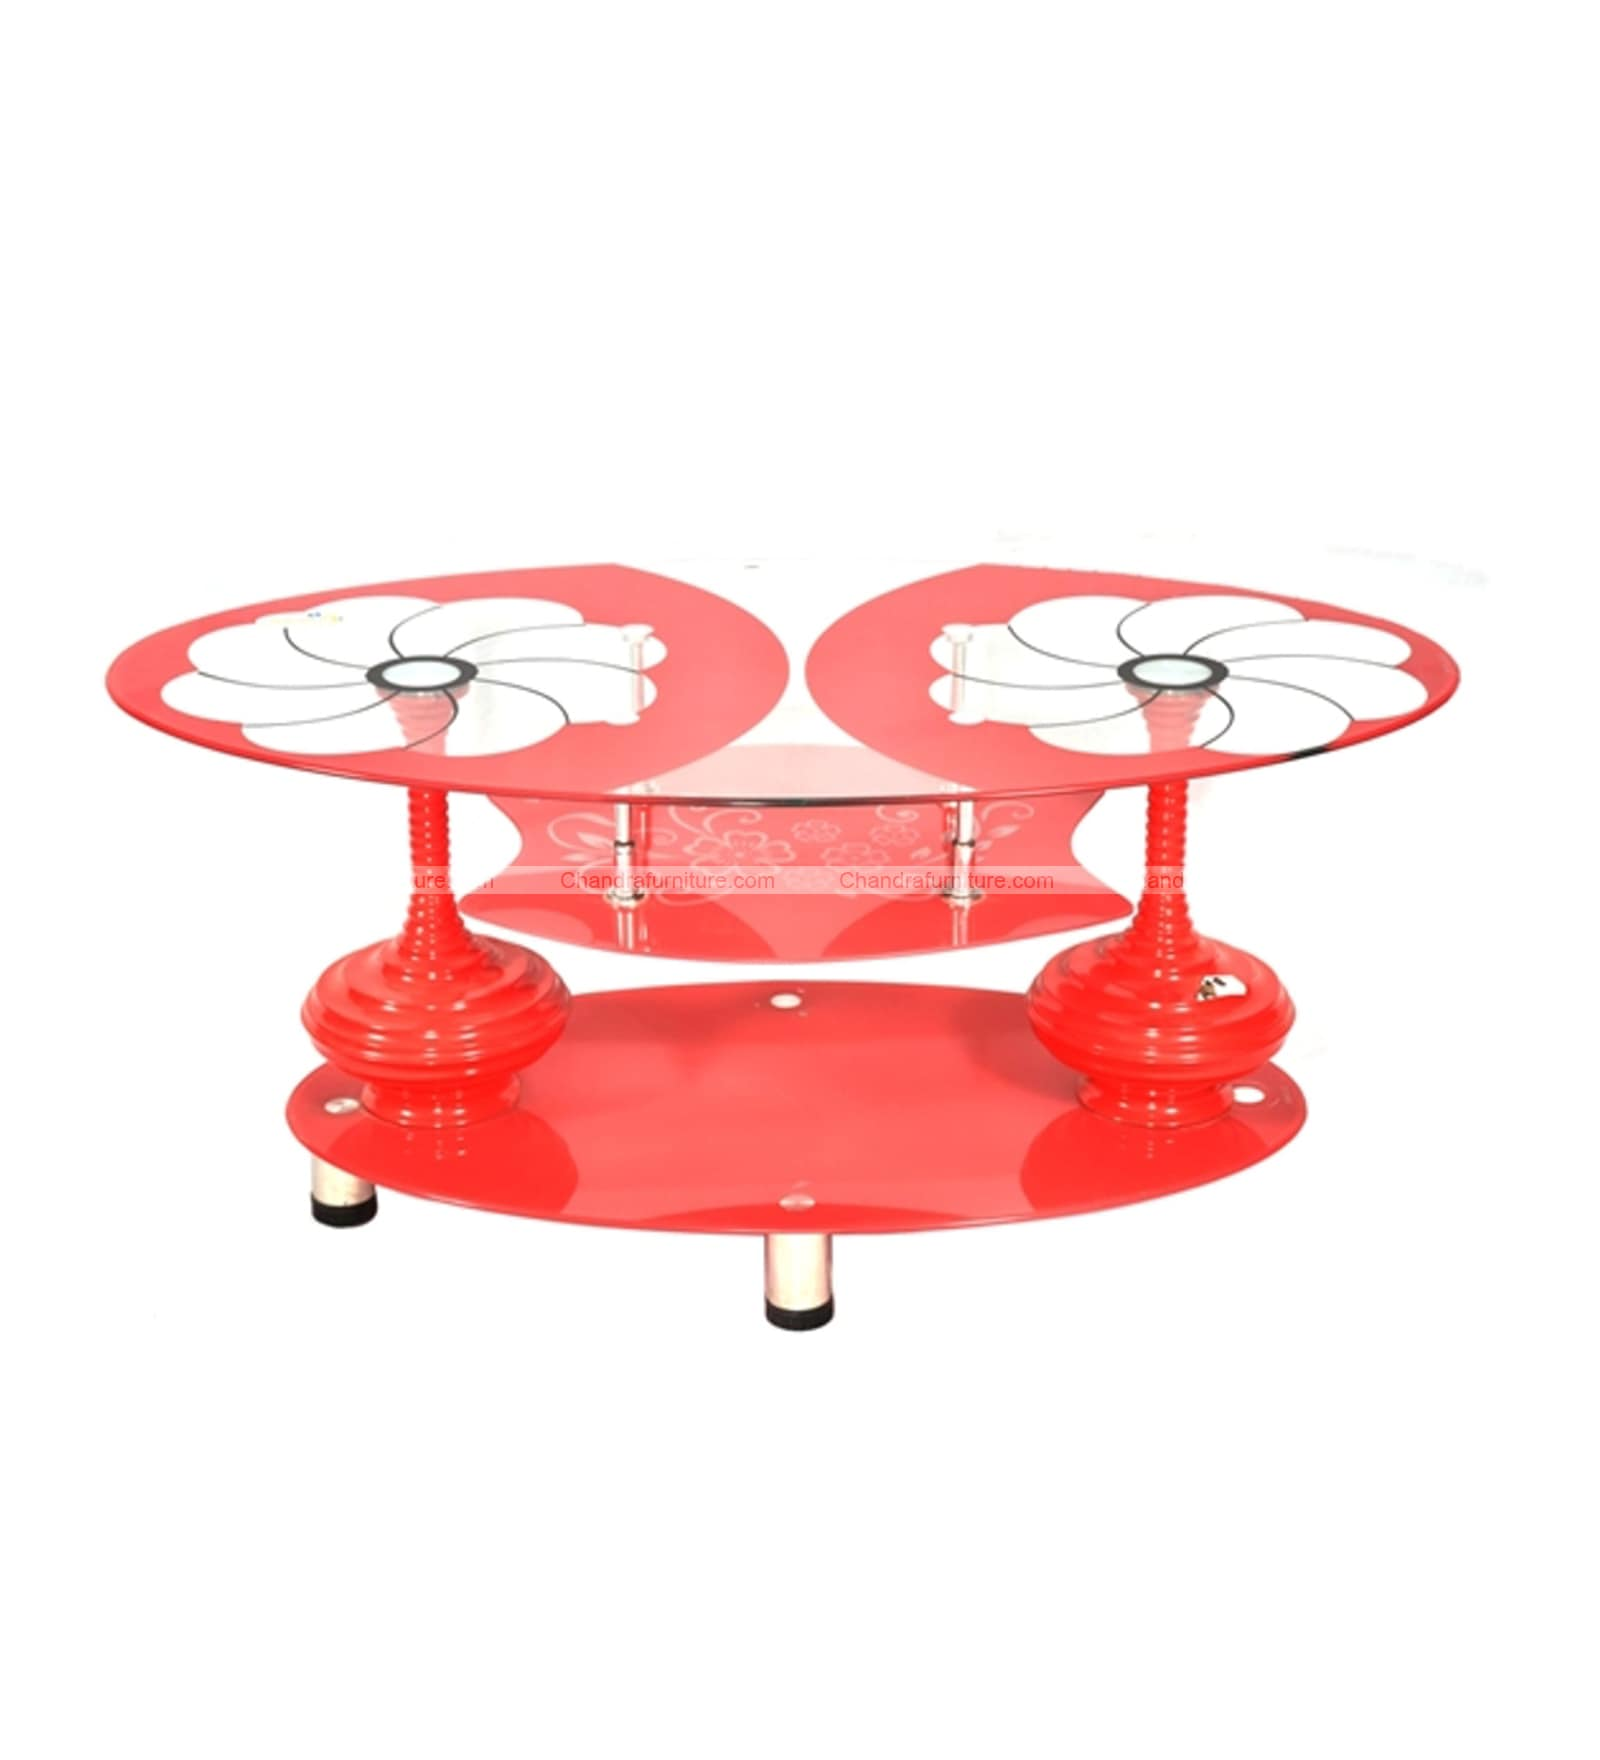 CHANDRA FURNITURE CENTER TABLE  1527